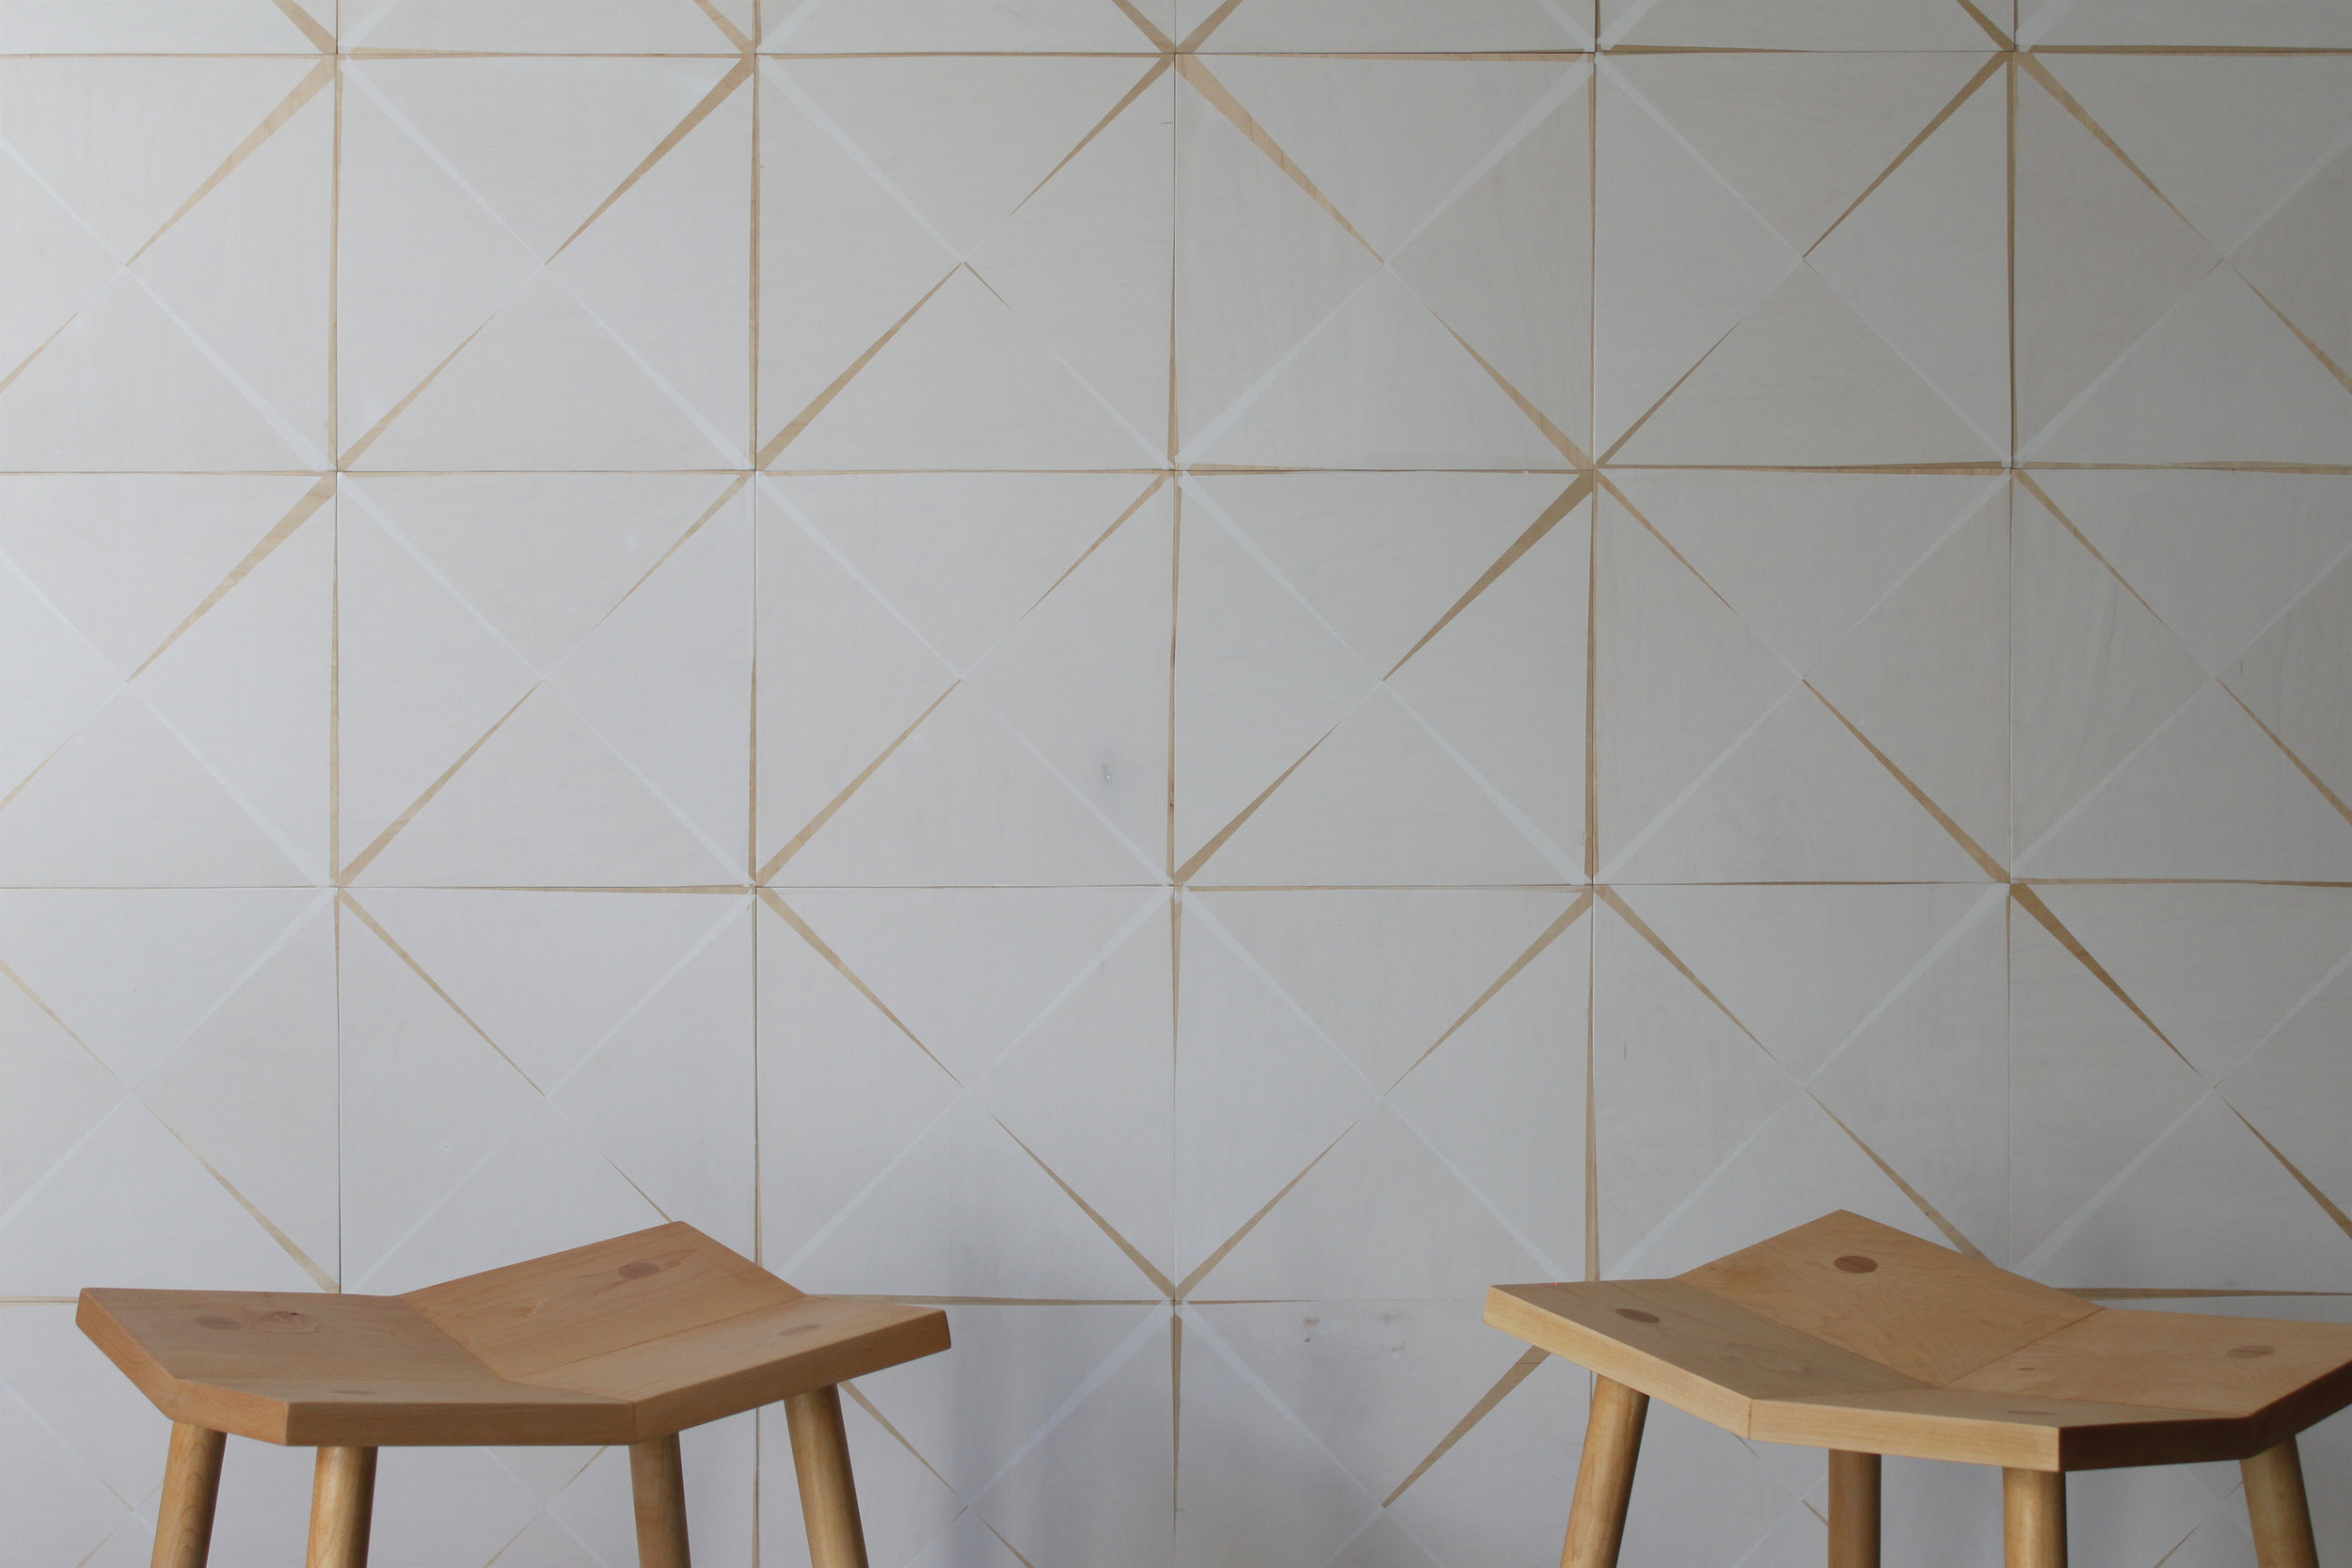 """PITCH   AN ODE TO IMPERFECTION, PITCH TILES CREATE AN ORIGAMI EFFECT  THE GEOMETRY OF TRADITIONAL TILES WITH THE WARMTH OF WOOD  EACH MODULE MEASURES 12""""x12"""", 3/8"""" THICK  THE DESIGN CAN BE COLOR CUSTOMIZED  MINIMUM ORDER IS 32 SF  LEAD TIME IS 2-4 WEEKS  INTENDED FOR VERTICAL INDOOR USE IN NON WET AREAS  MADE WITH FSC CERTIFIED, FORMALDEHYDE FREE PLYWOOD FROM THE PACIFIC NORTHWEST (NEW GROWTH)  NO VOC WATER BASED FINISHES  CAN CONTRIBUTE TO USGBC LEED CREDITS INCLUDING CERTIFIED WOOD AND LOW-EMITTING MATERIALS  FIRE RATING: CLASS C  $15-20/SF - PRICING VARIES BASED ON ORDER VOLUME AND CUSTOMIZATION SELECTIONS  CONTACT INFO@MOONISHCO.COM FOR MORE INFORMATION"""